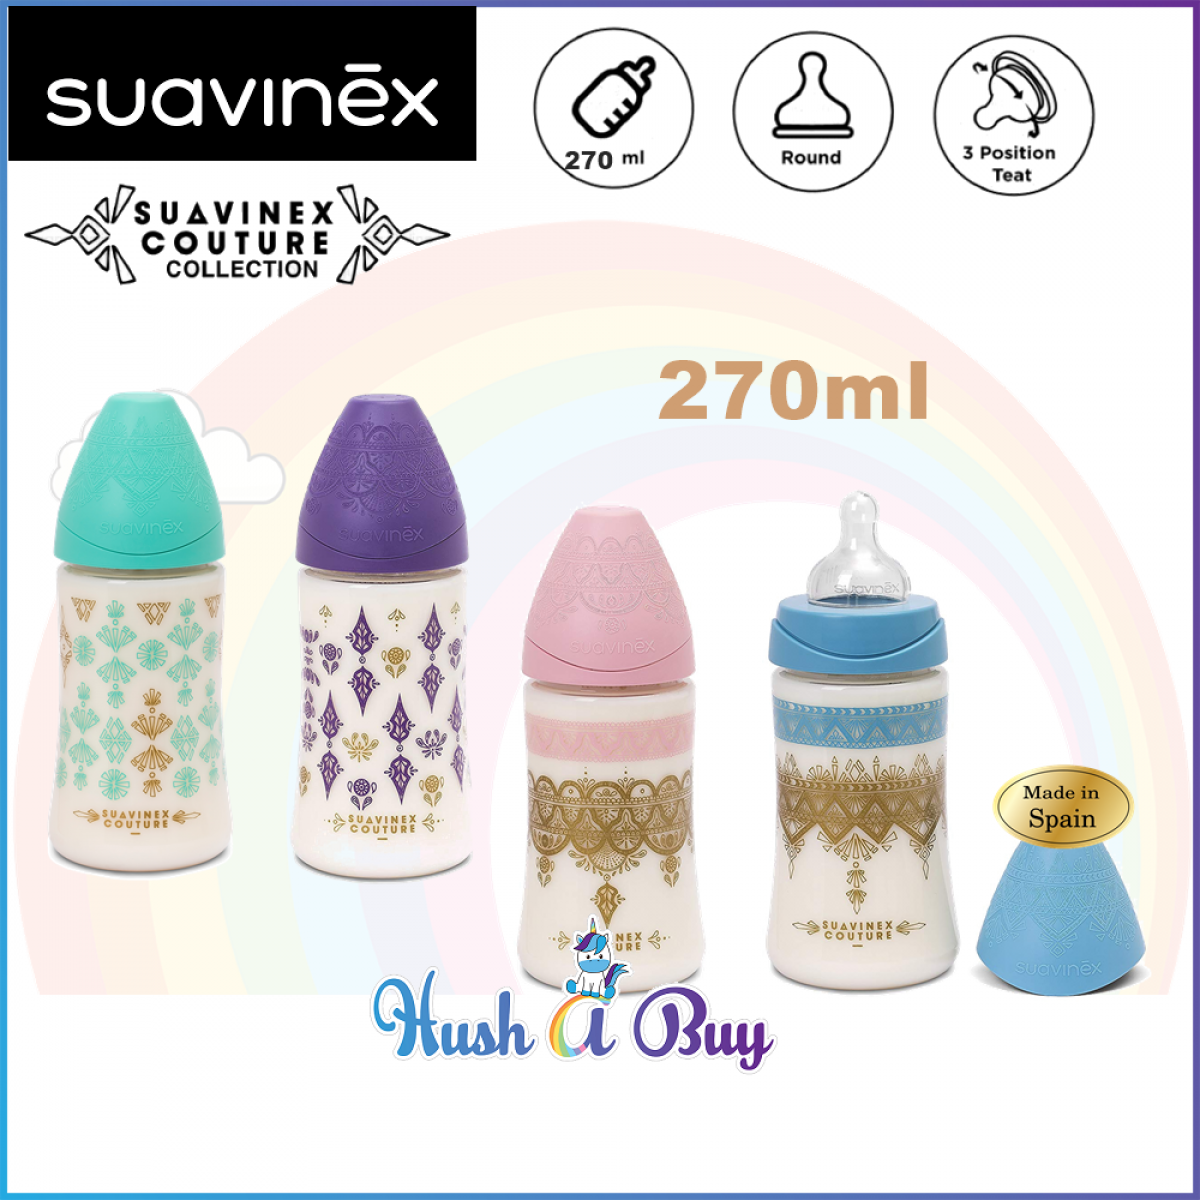 Suavinex Coutour PA Feeding Bottle with Anti-colic Teat 0.6M with 3P Round Teat 270ml